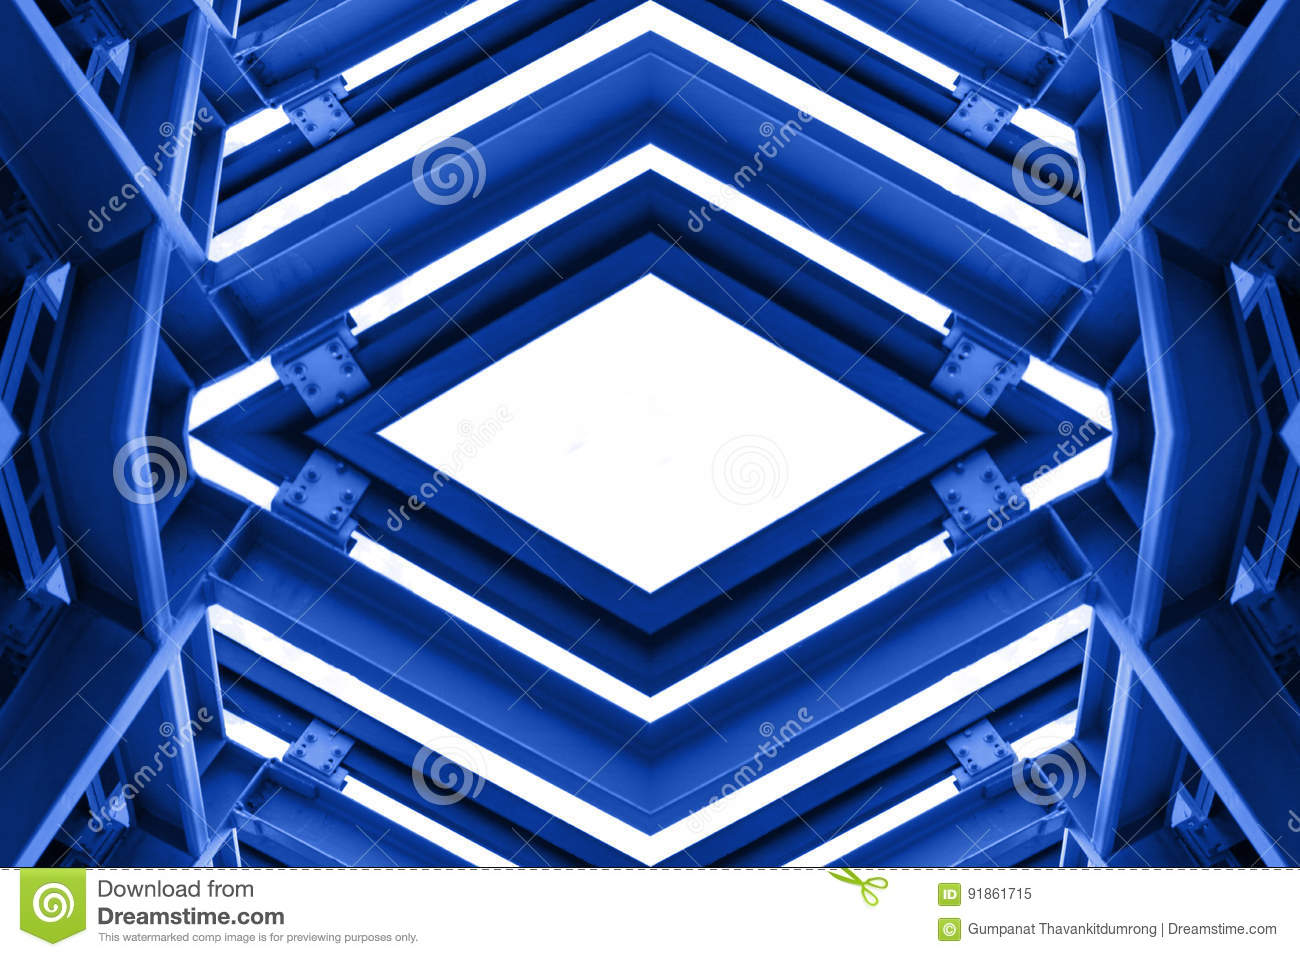 Metal structure similar to spaceship interior in blue tone